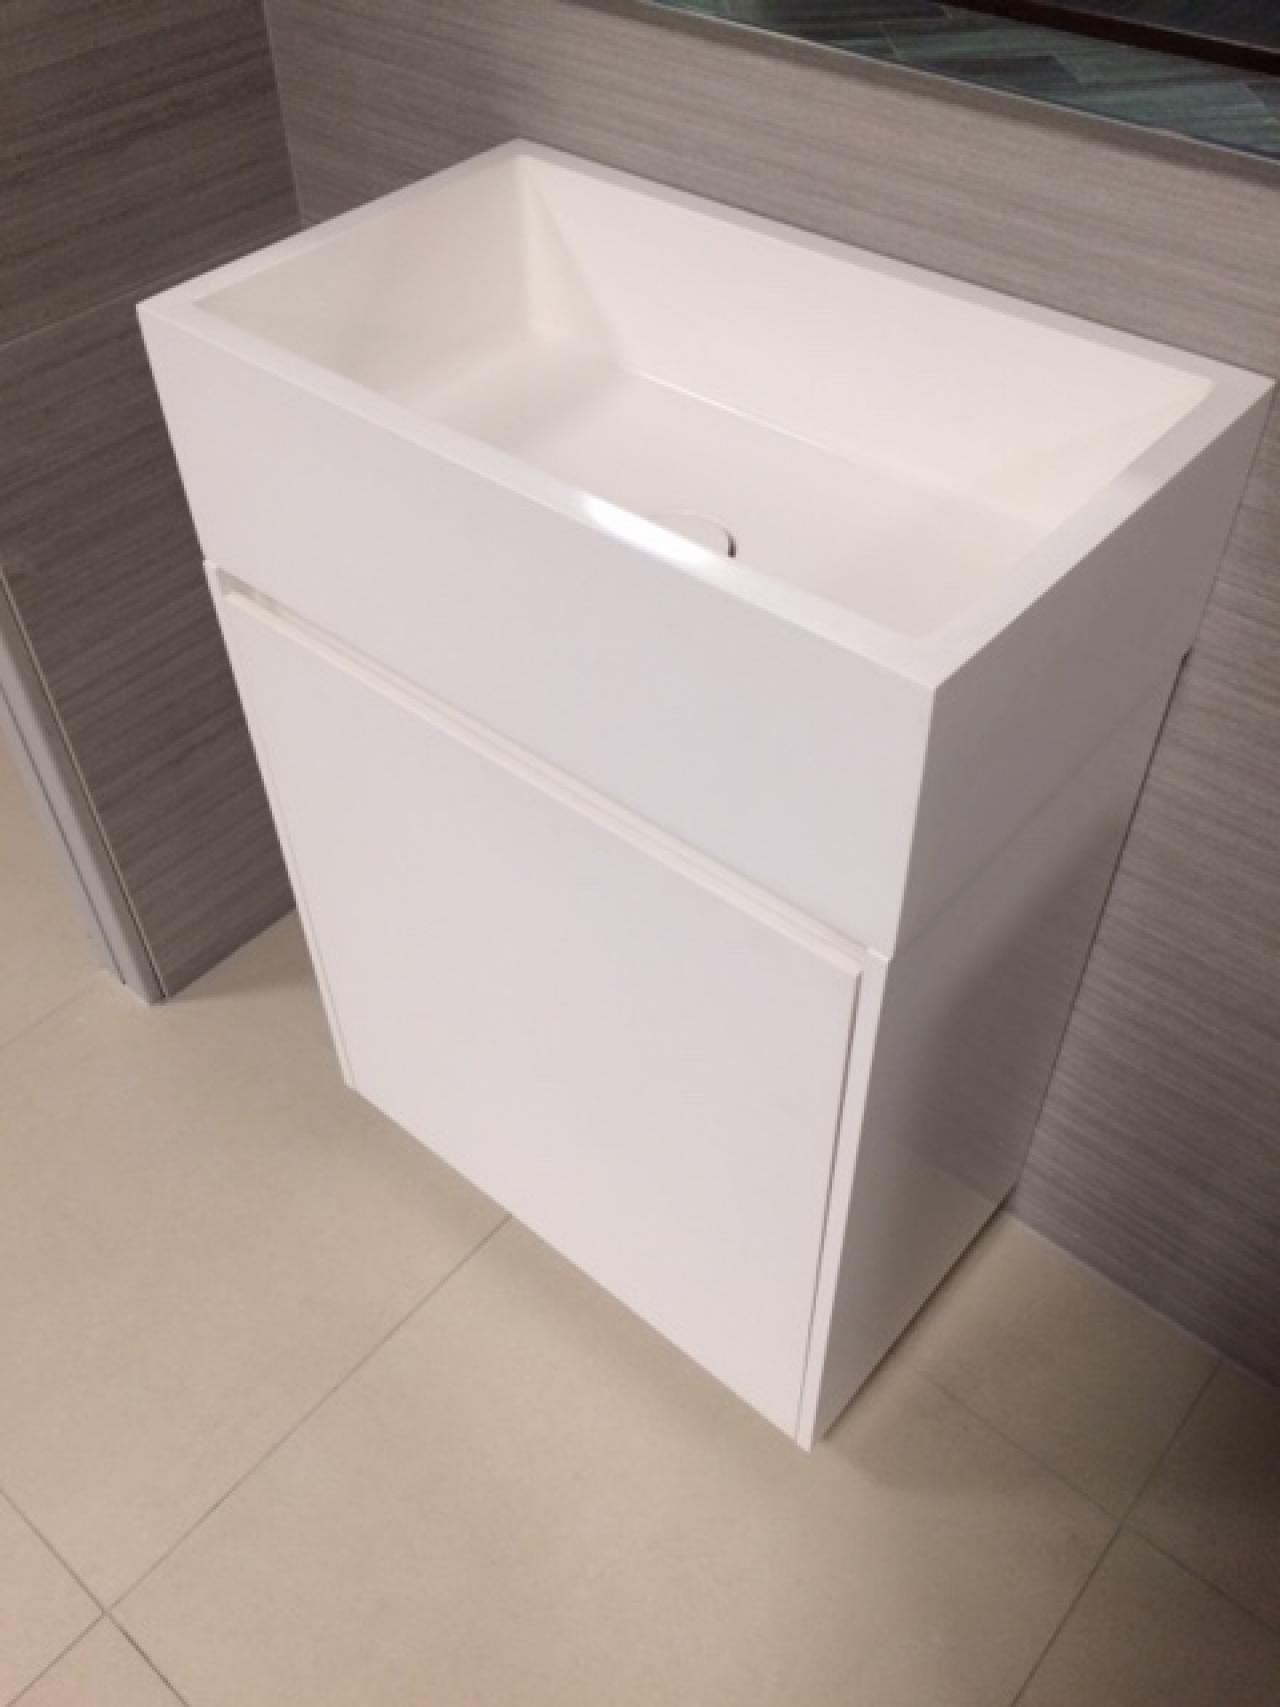 Mobile bagno freestanding casabath prezzo outlet a for Outlet mobili vicenza